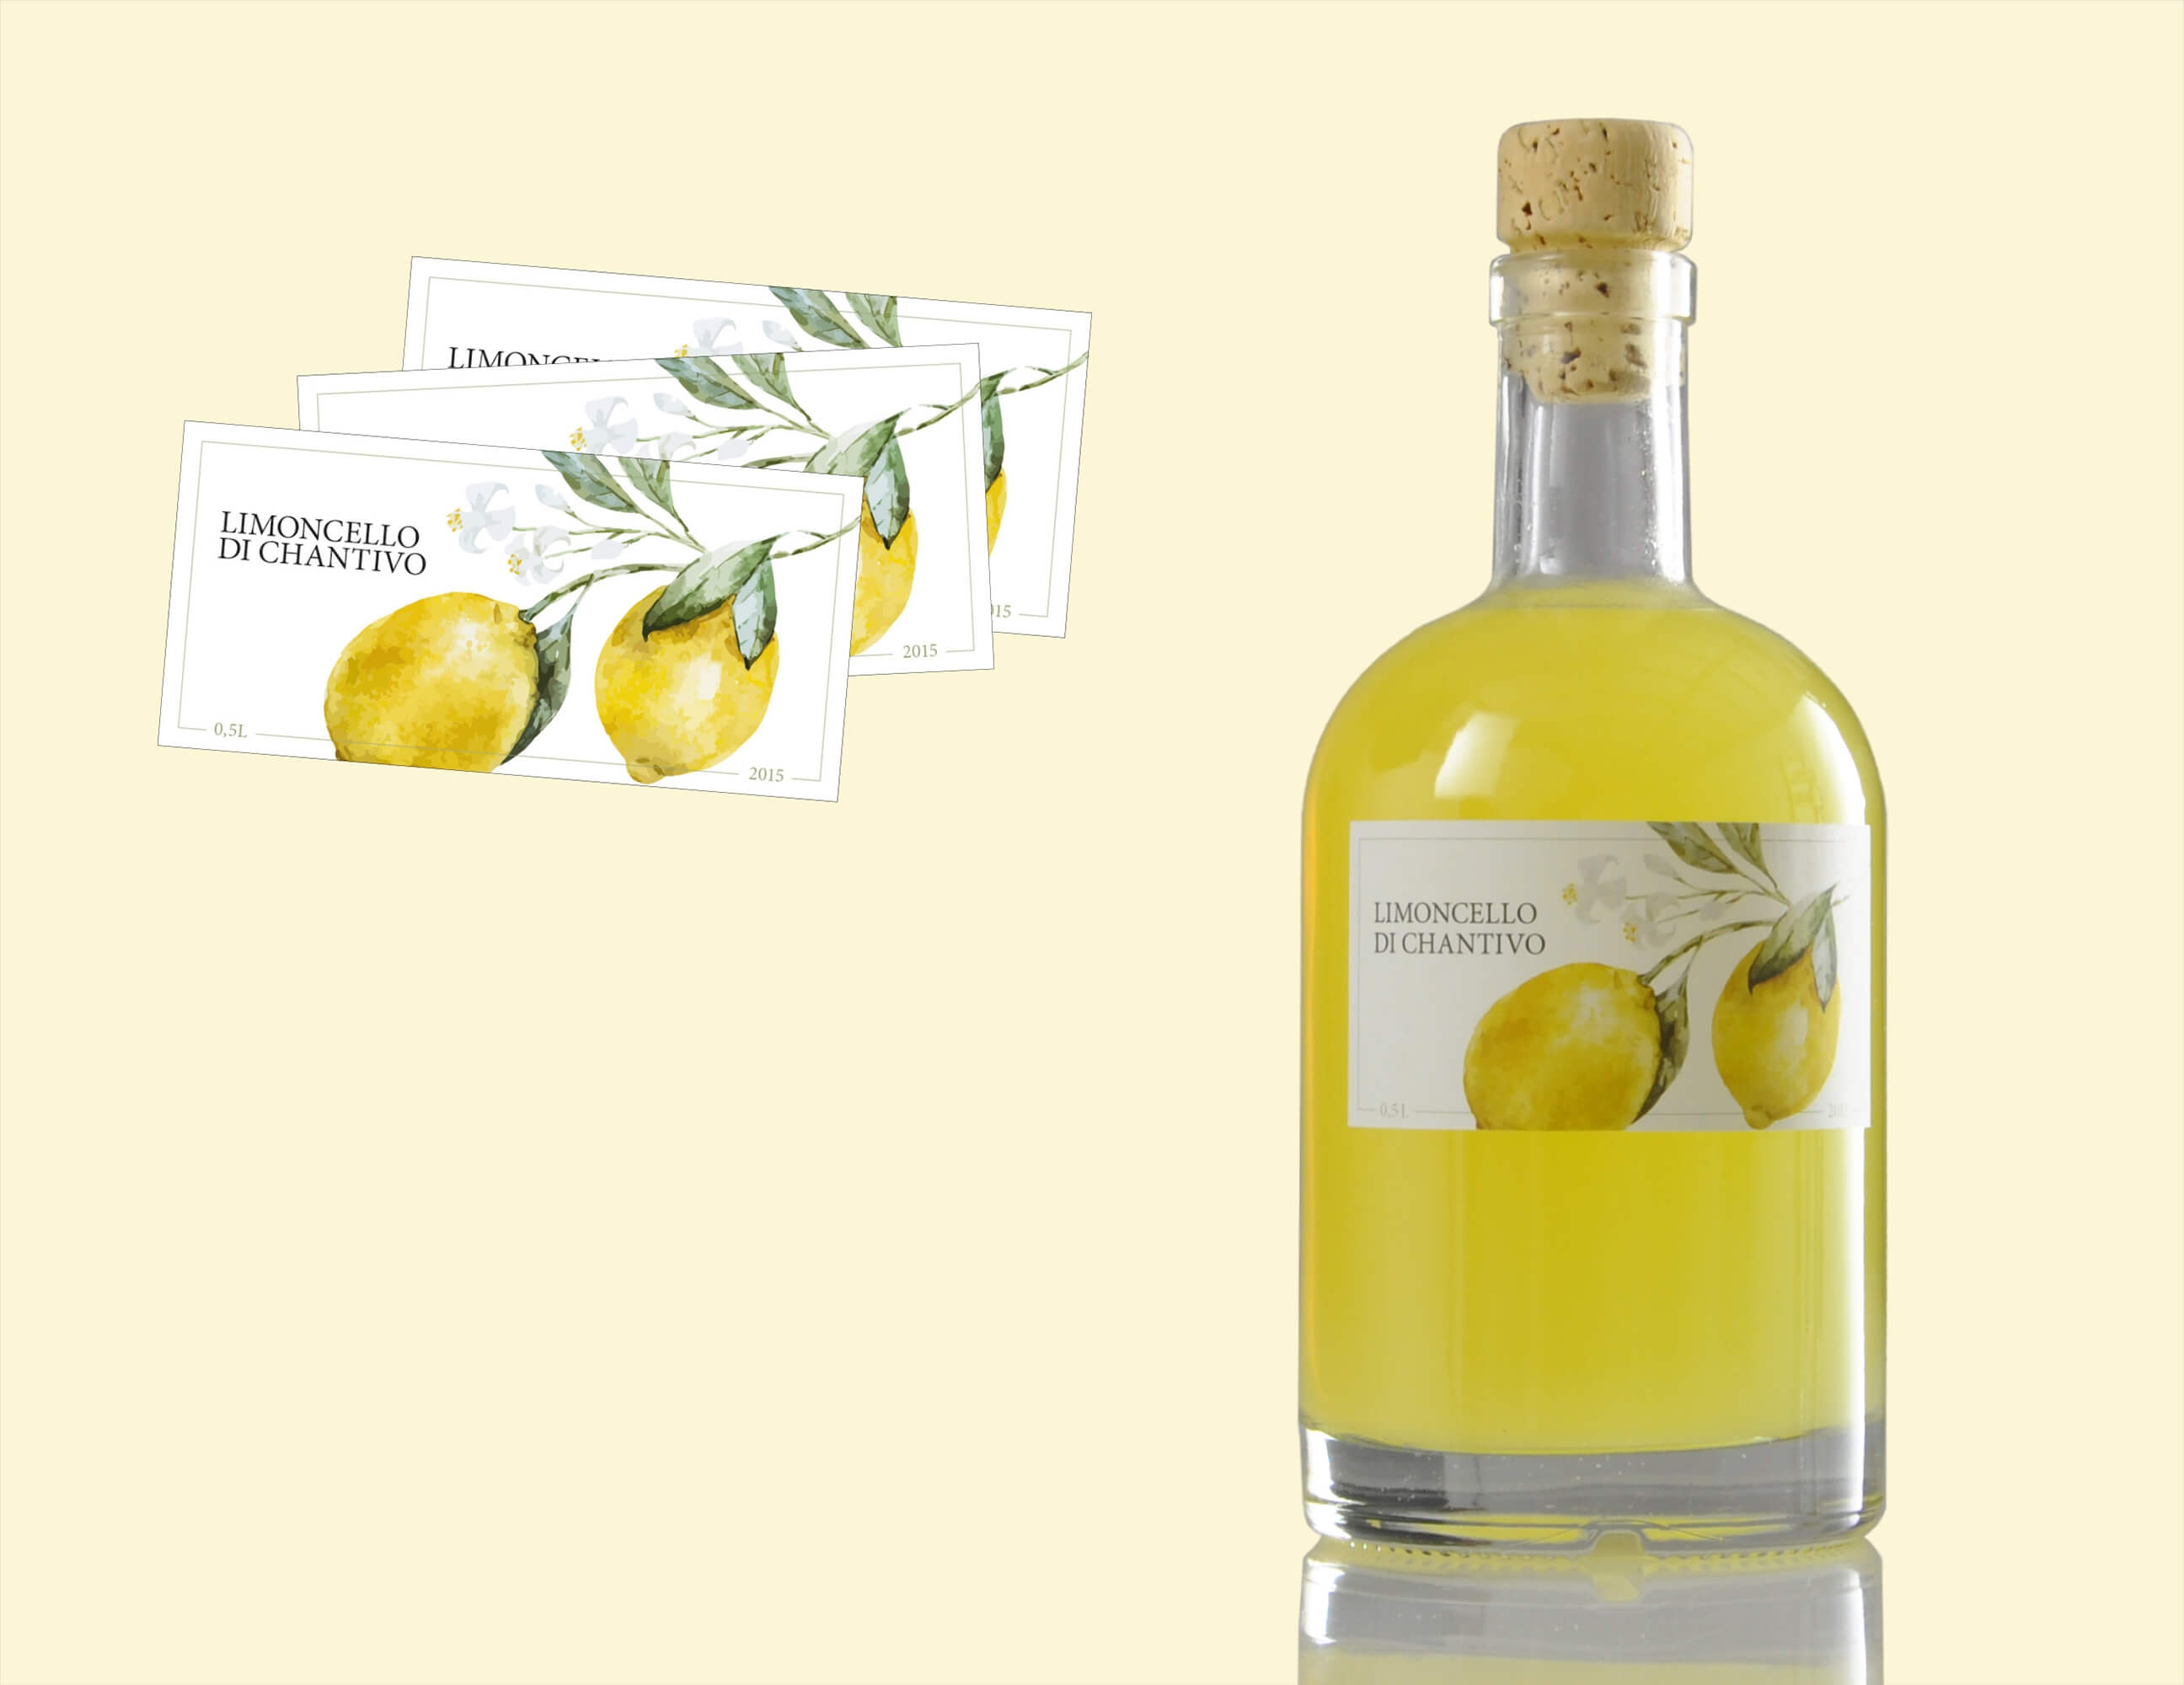 limoncello di chantivo